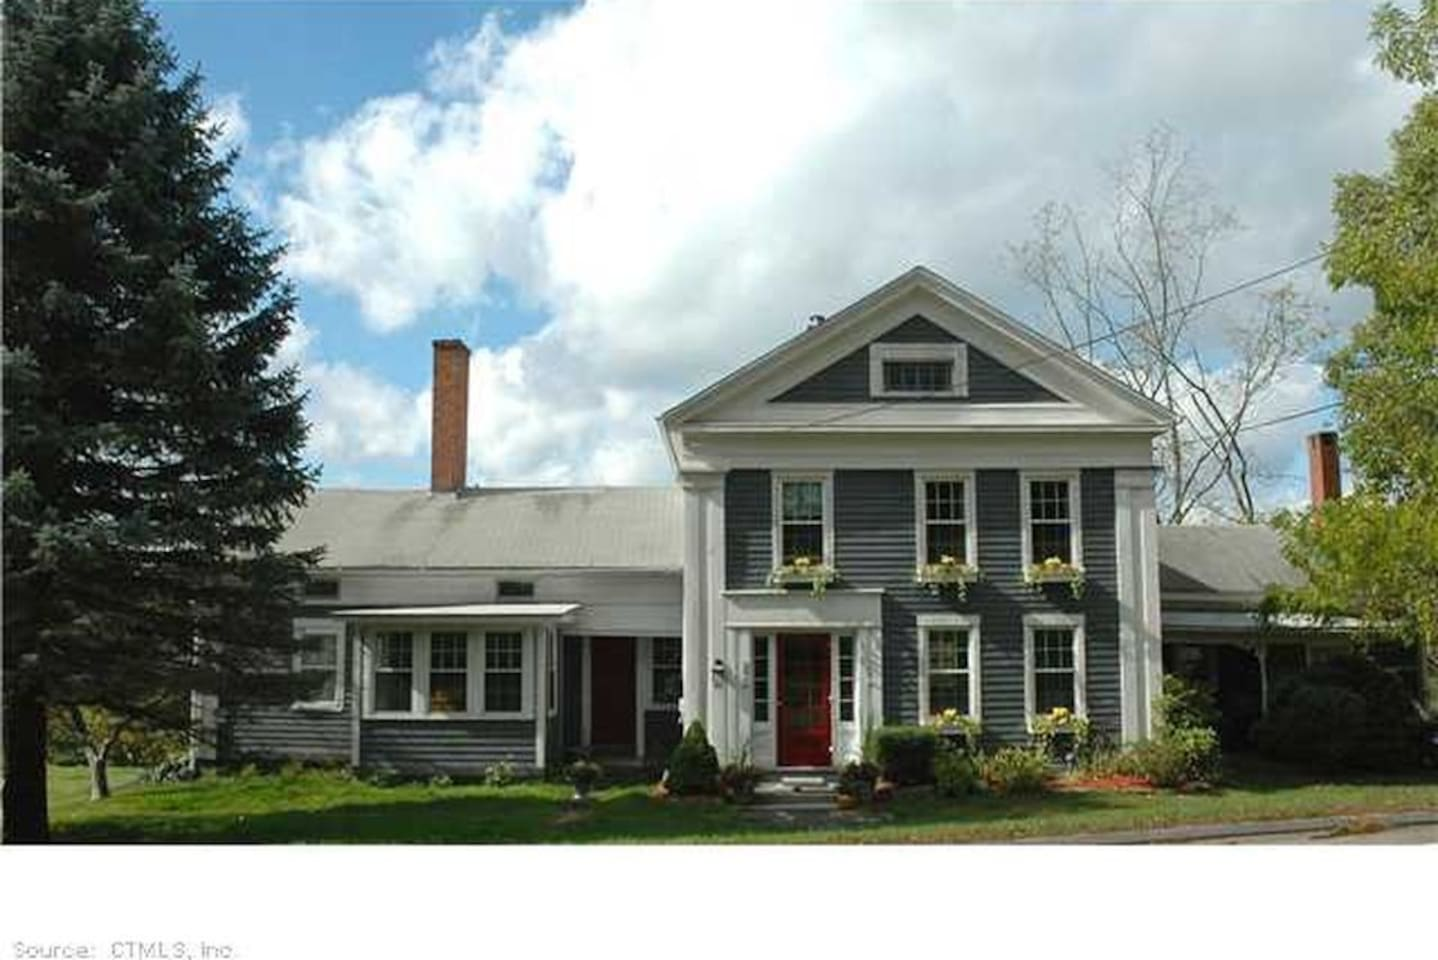 An 1847 Greek Revival country home